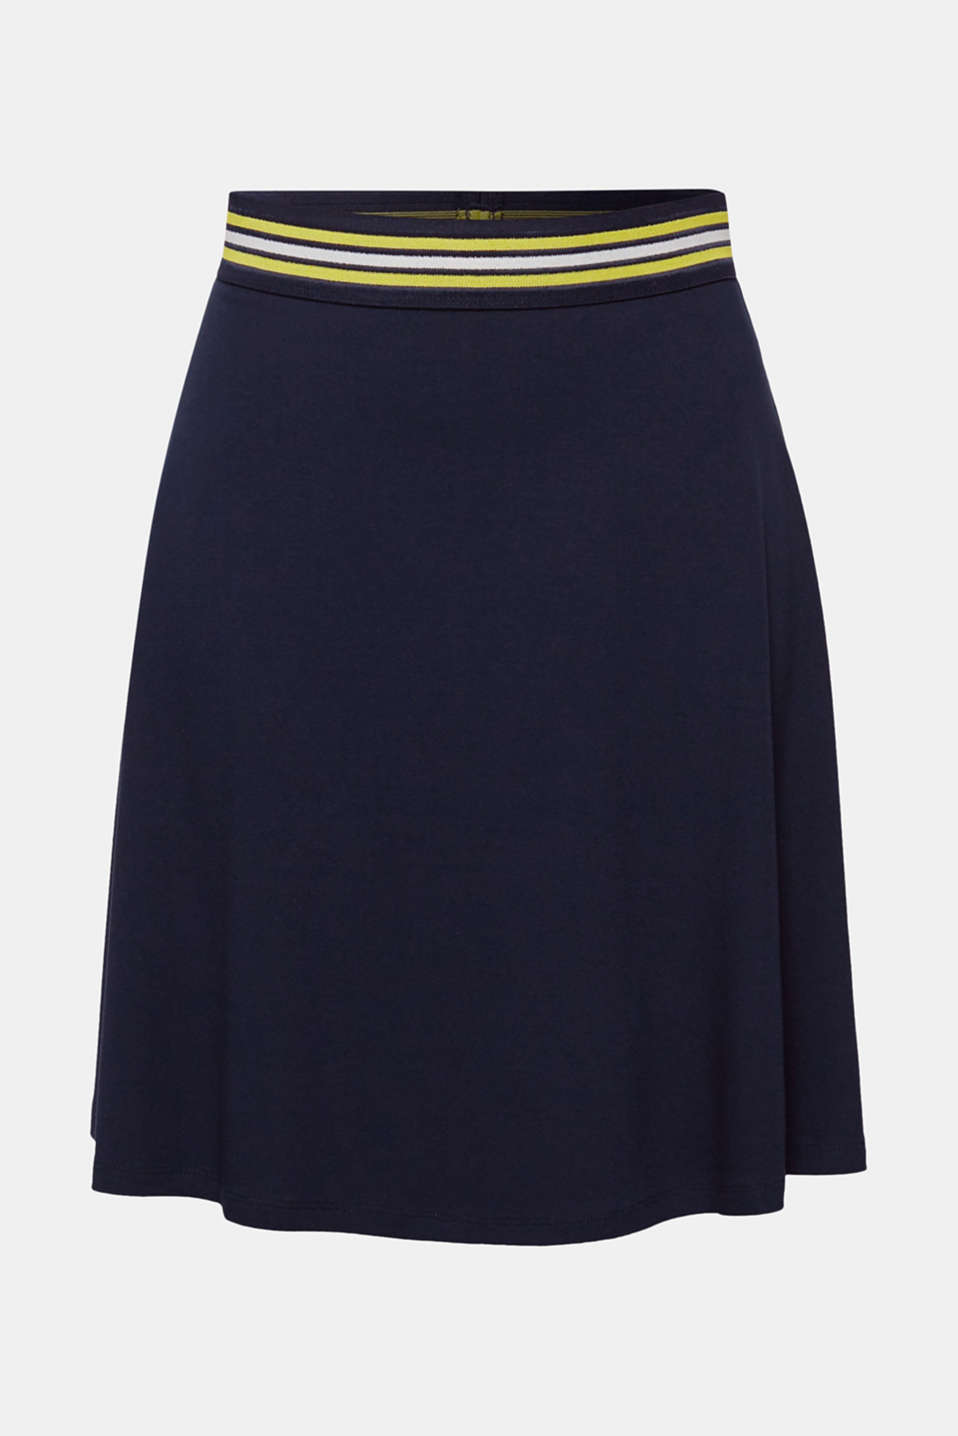 Skirts knitted, NAVY, detail image number 7